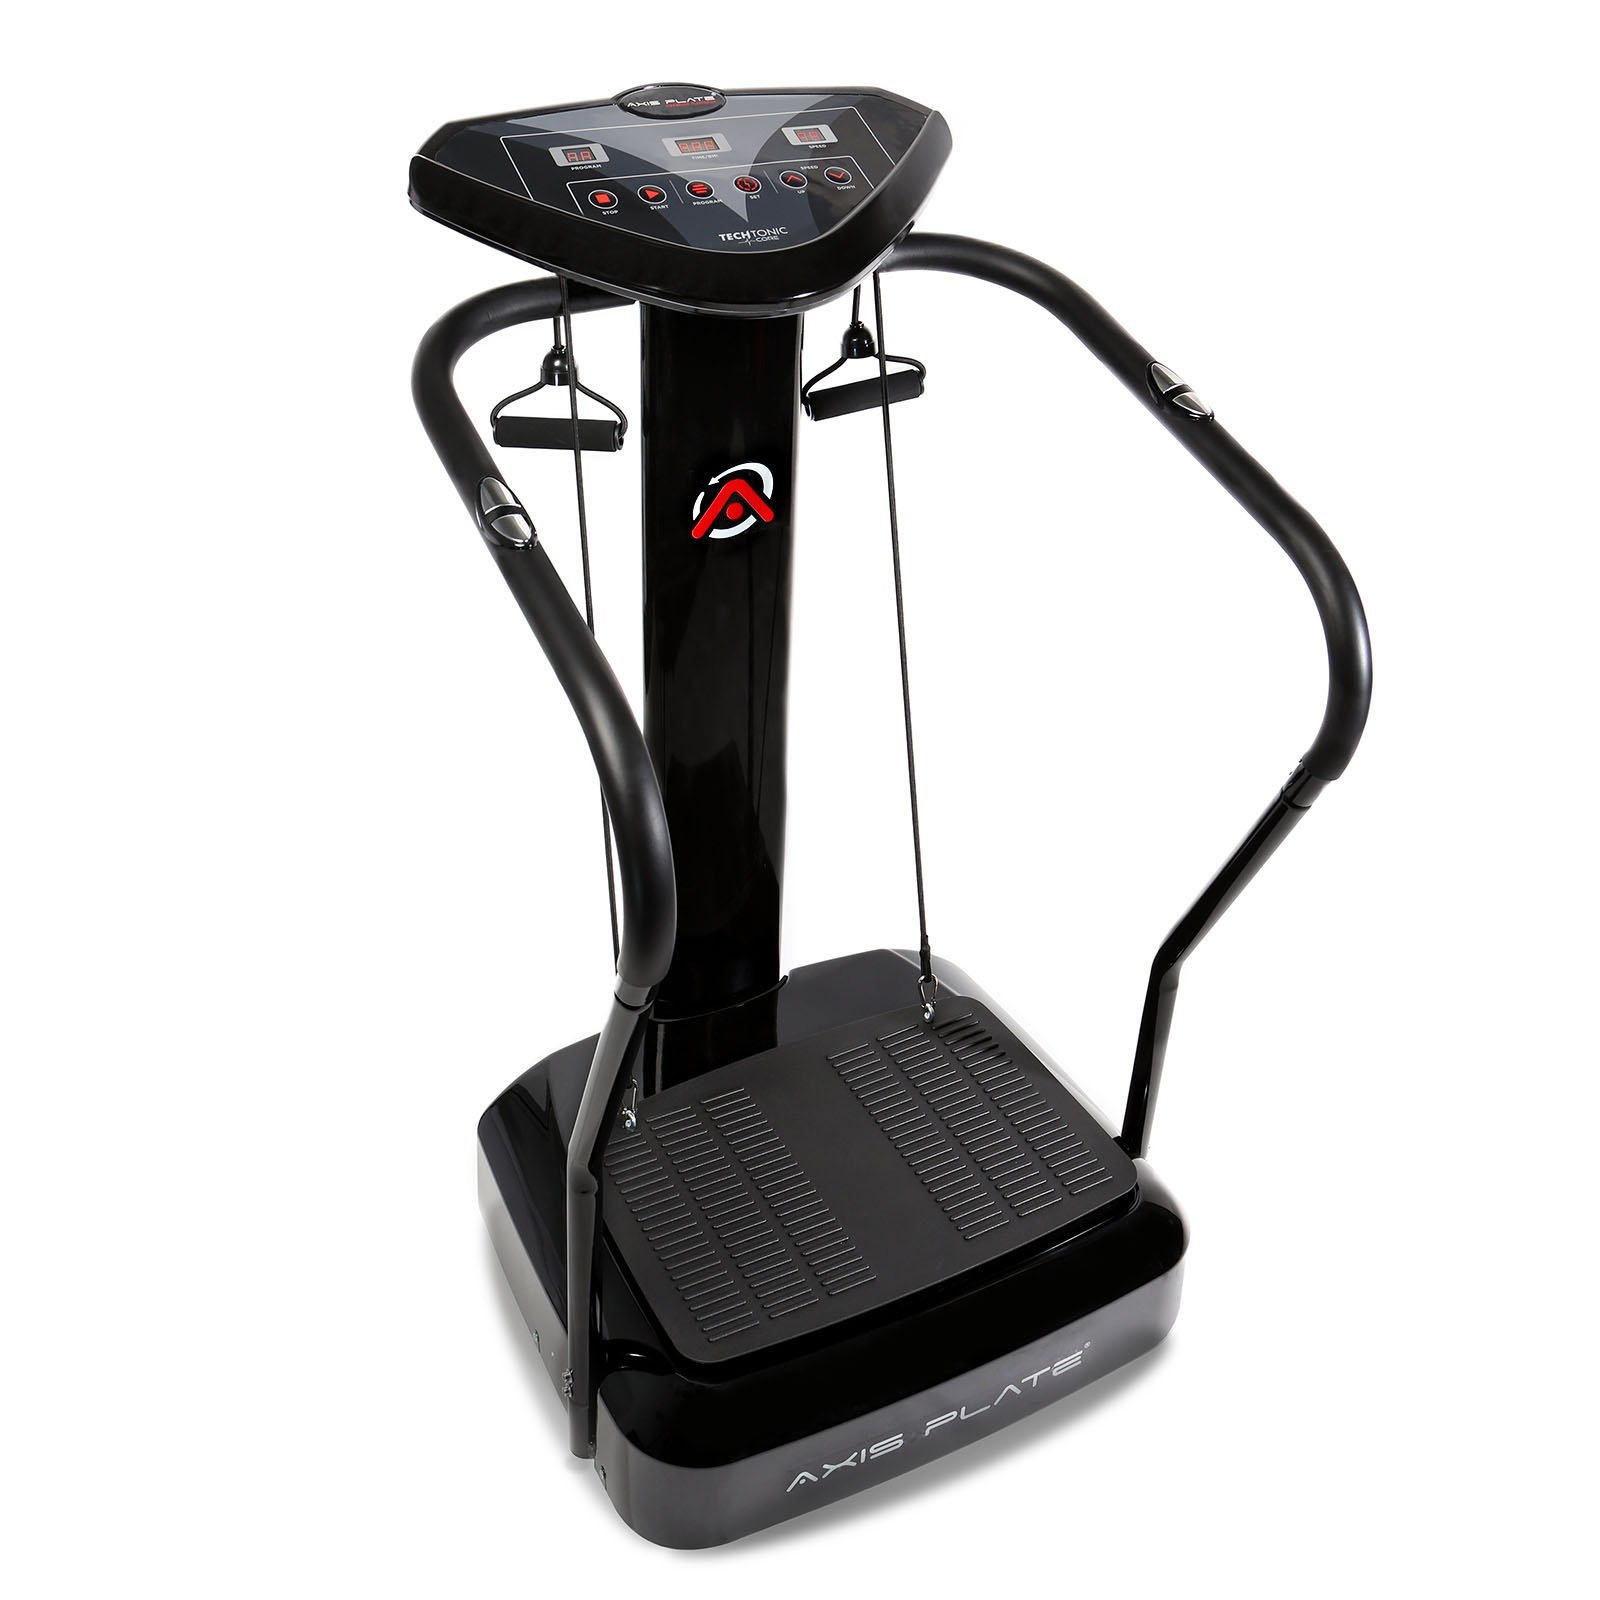 Axis-Plate Whole Body Vibration Platform Training and Exercise Fitness Machine by Axis-Plate (Image #2)